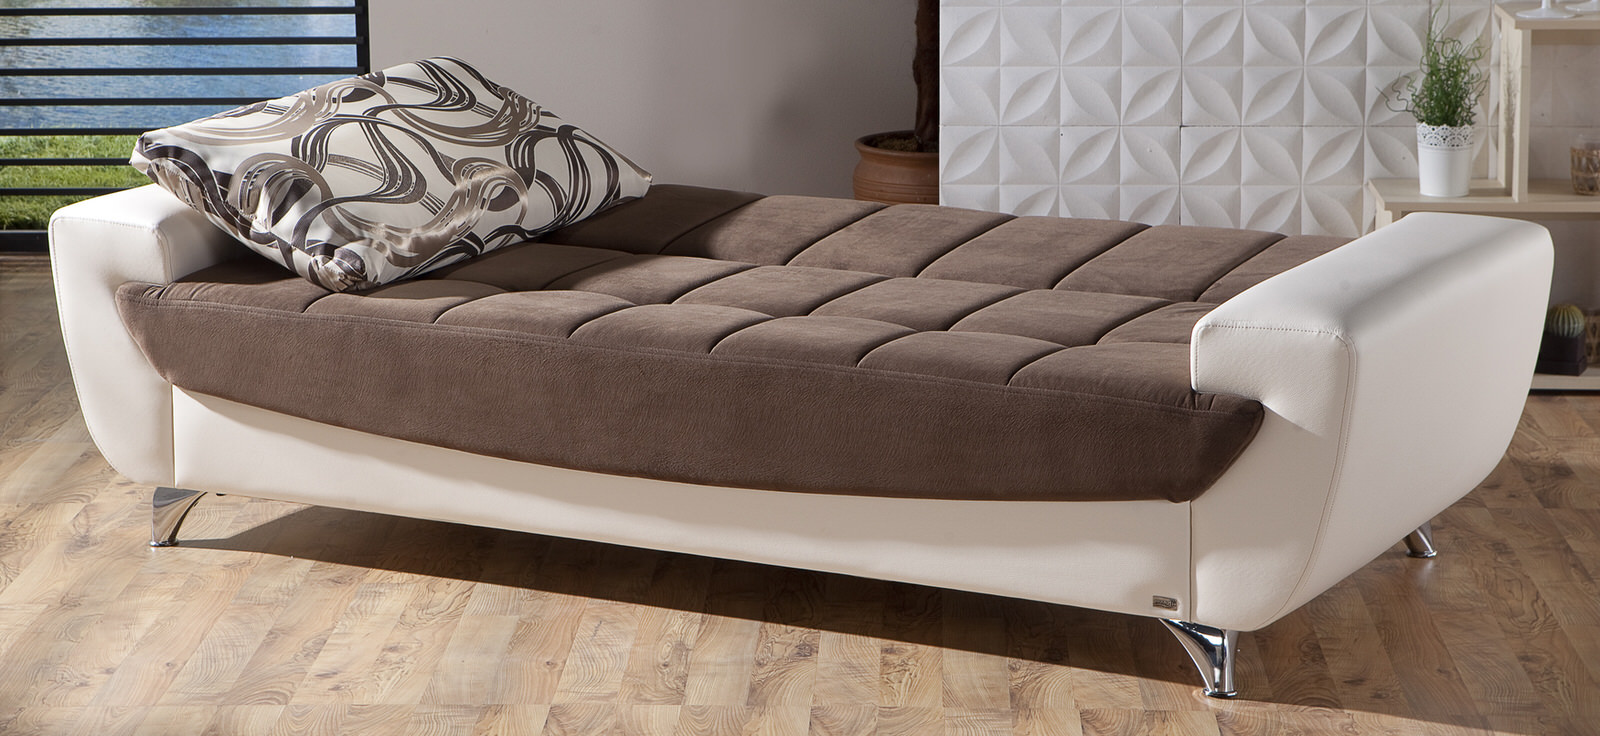 Legro Best Brown Convertible Sofa Bed by Sunset